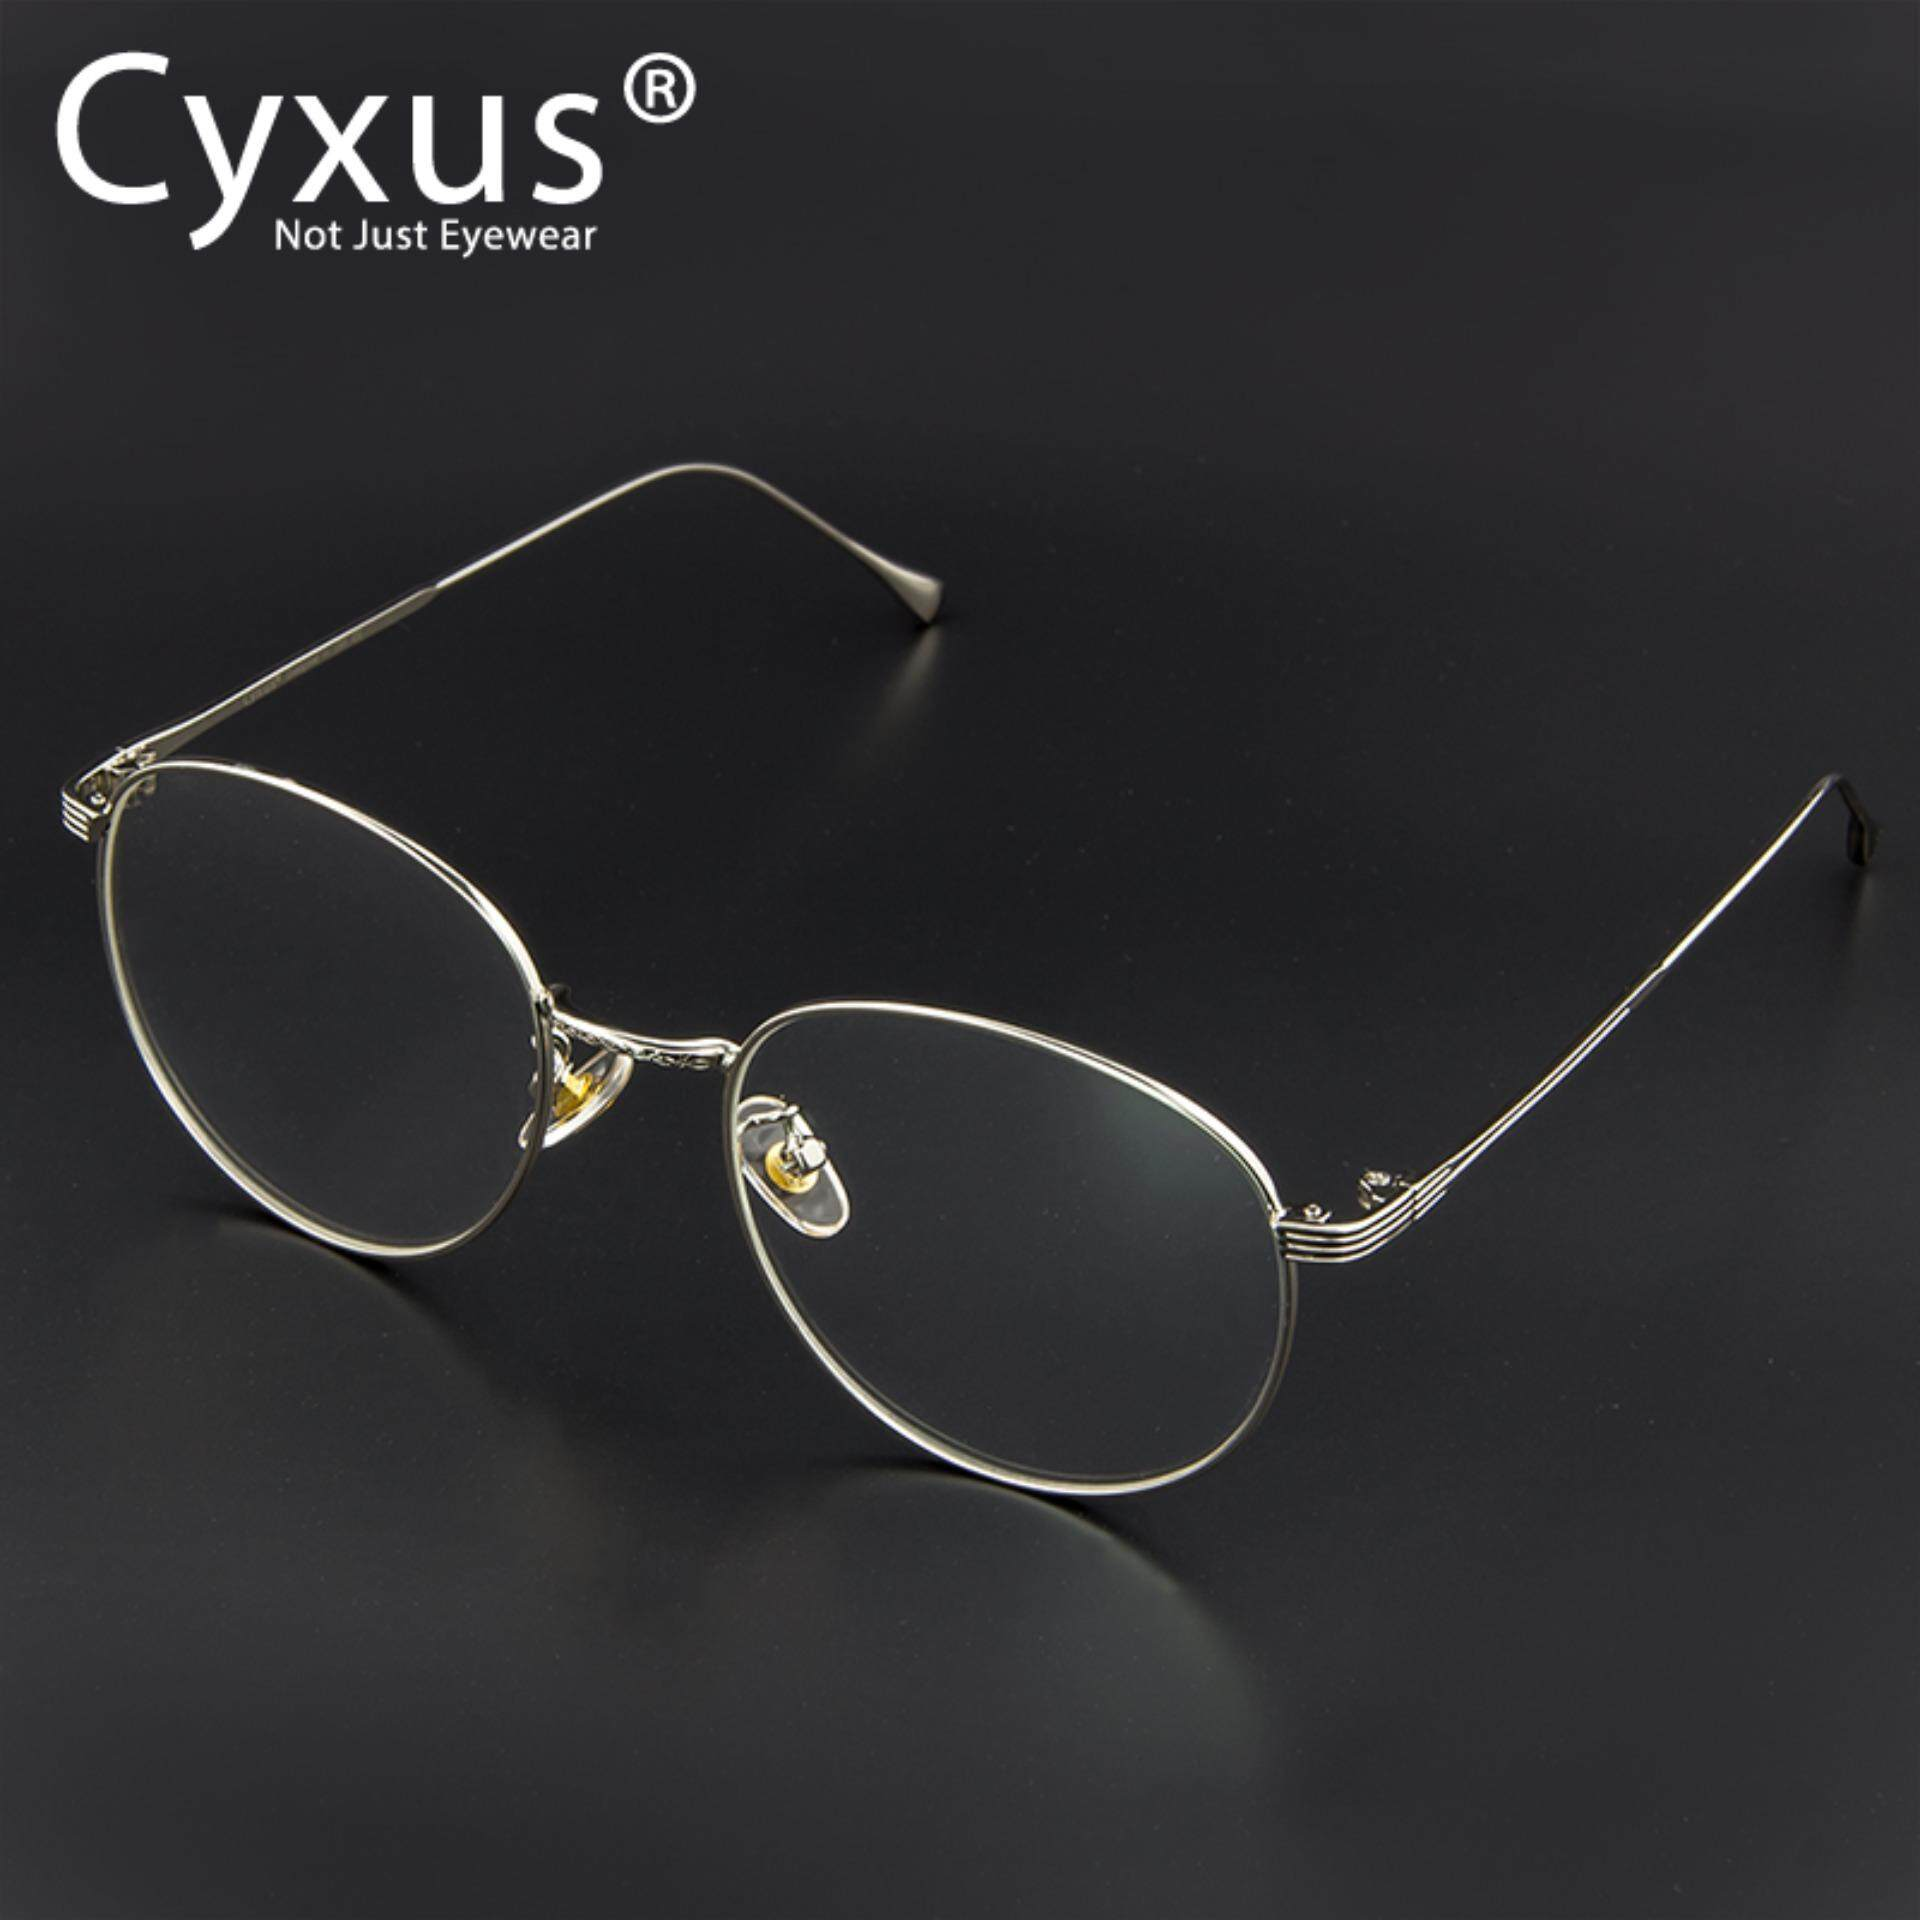 Cyxus Retro Metal Round Computer Glasses Block Blue Light UV Silver/Black Frame Fashion Eyewear